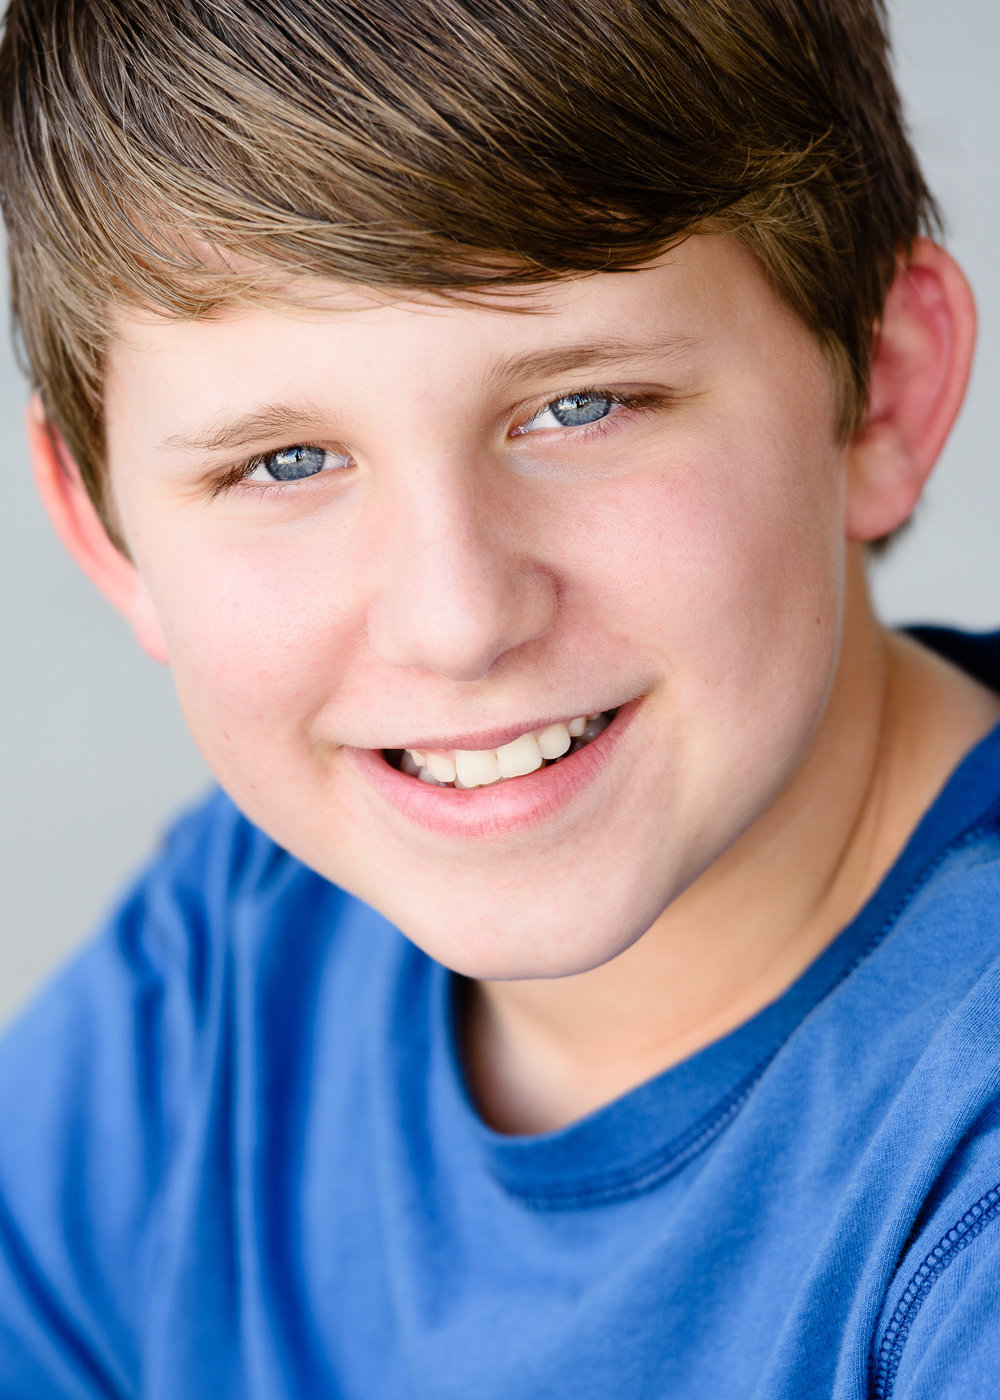 ChildrenHeadshots049.jpg